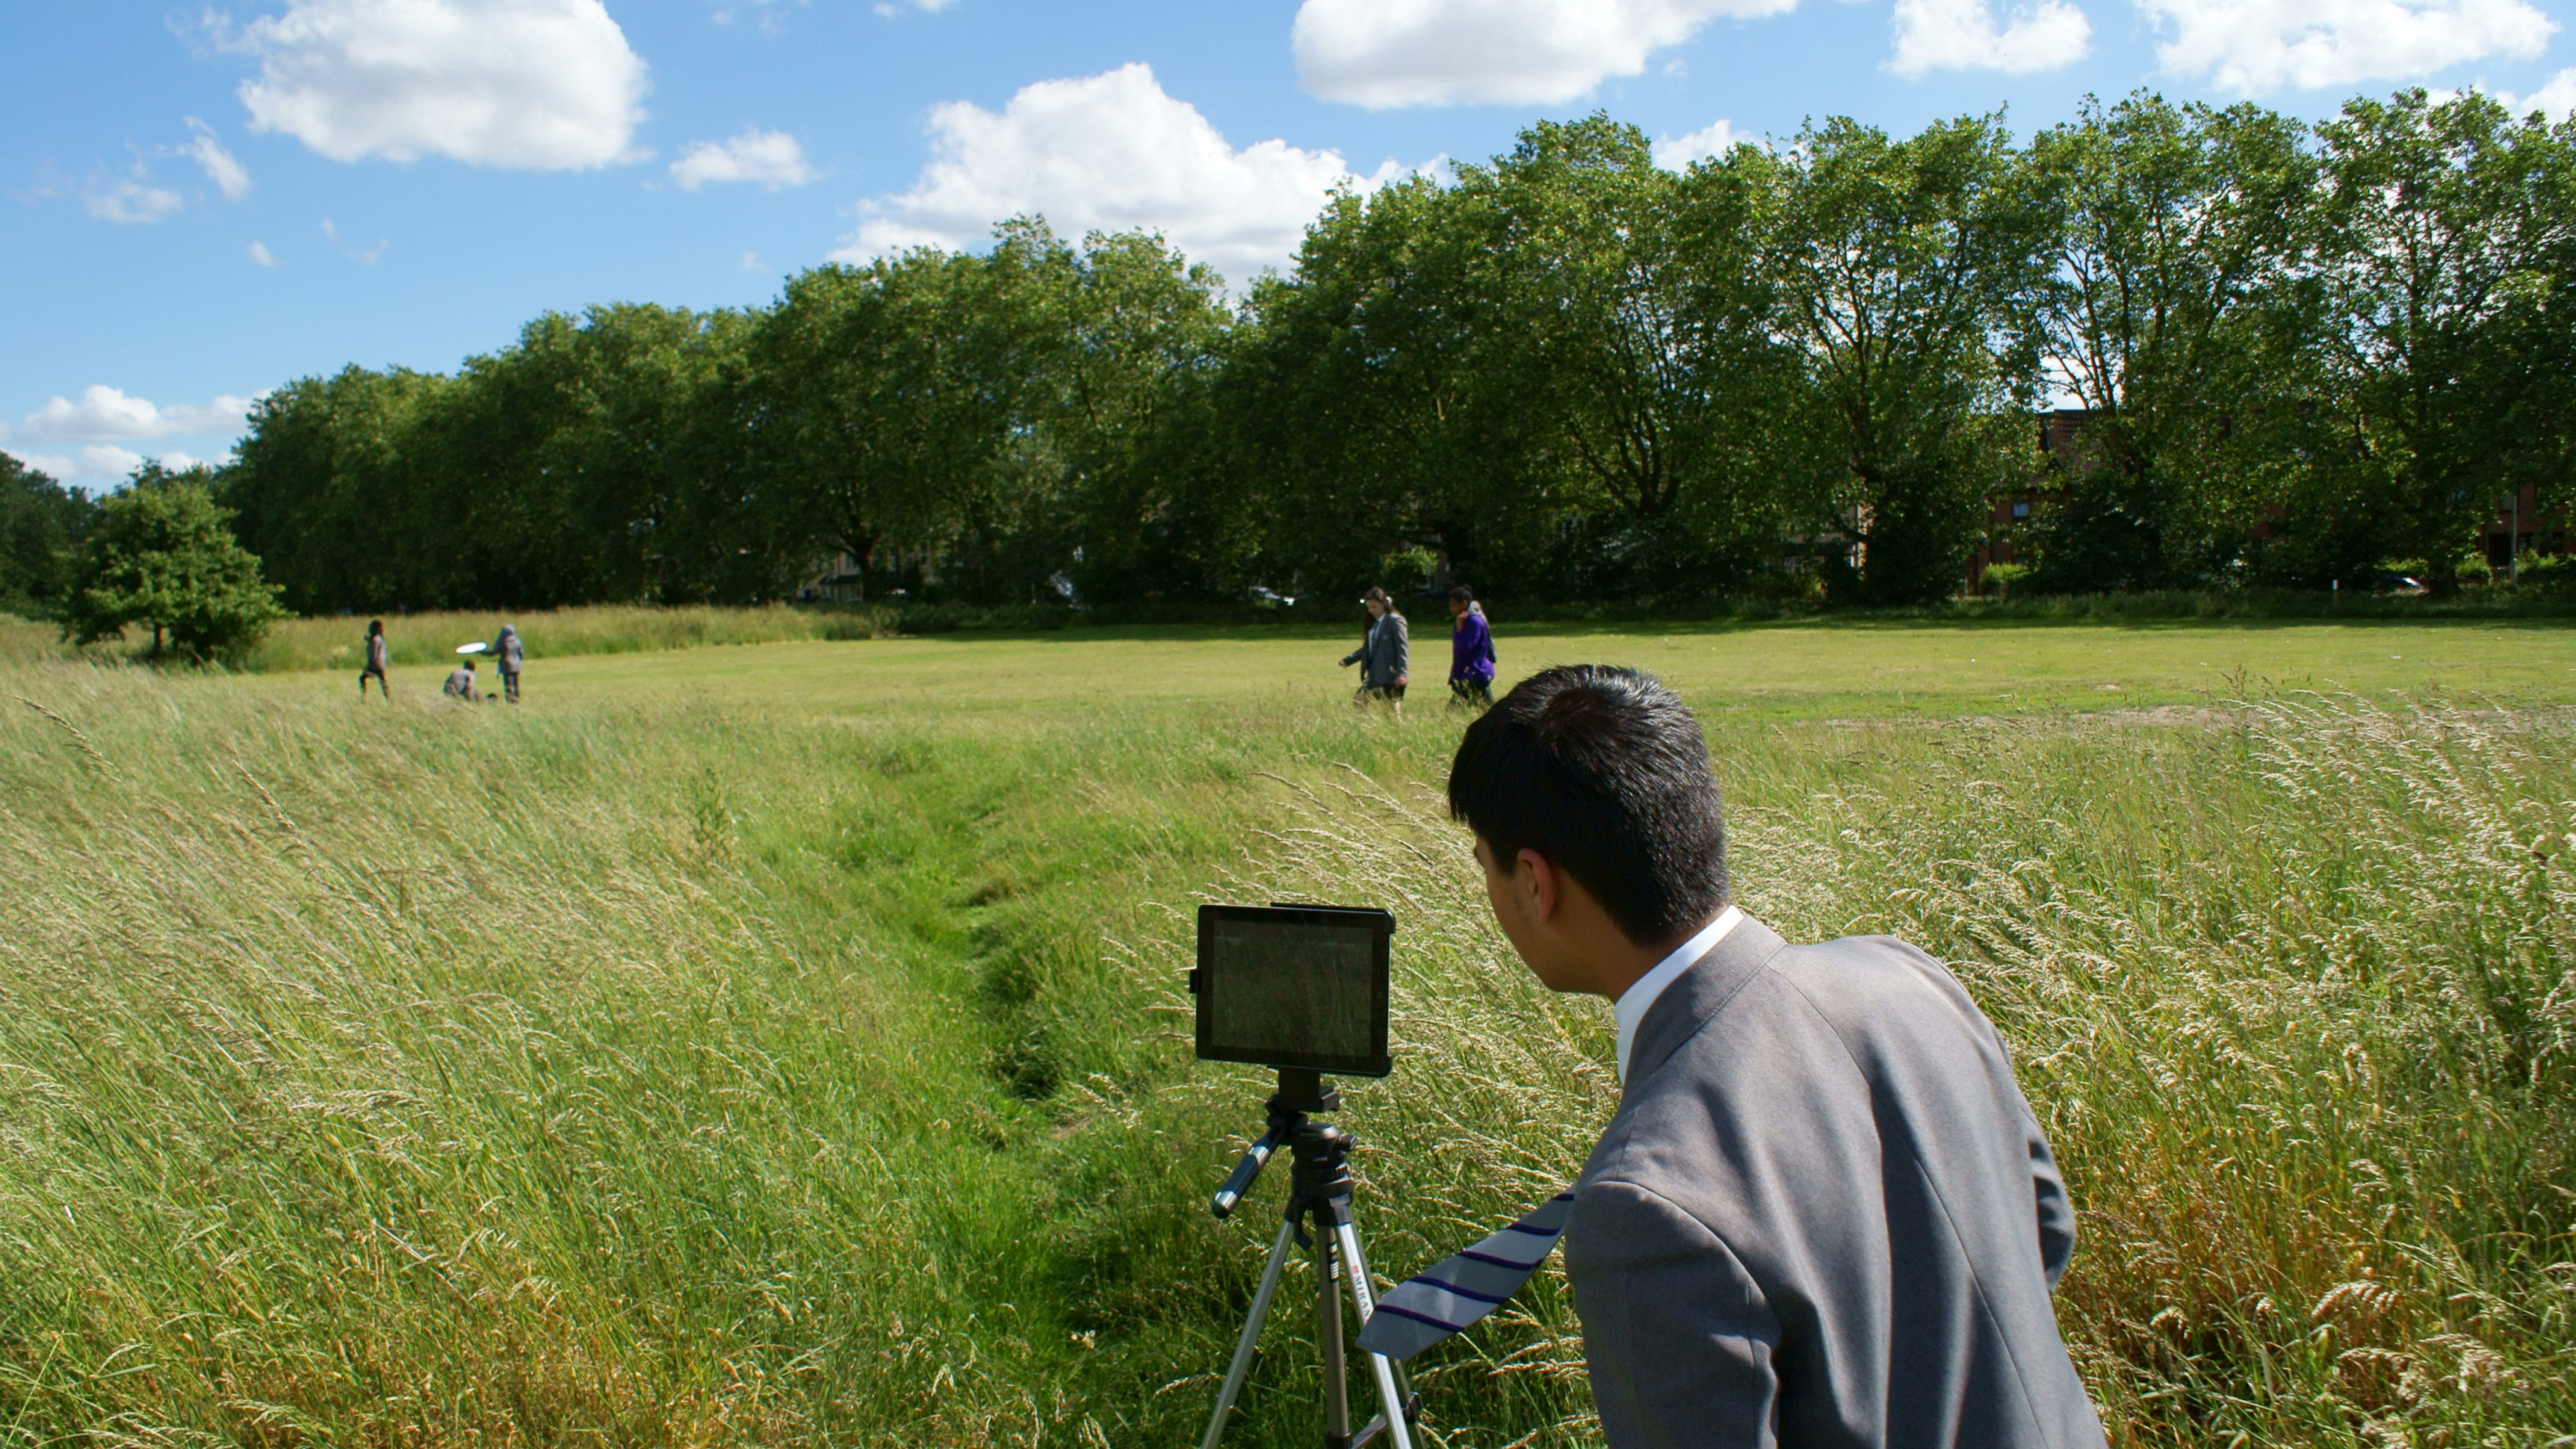 A mini filmmaking guide with tips for young people on selecting locations